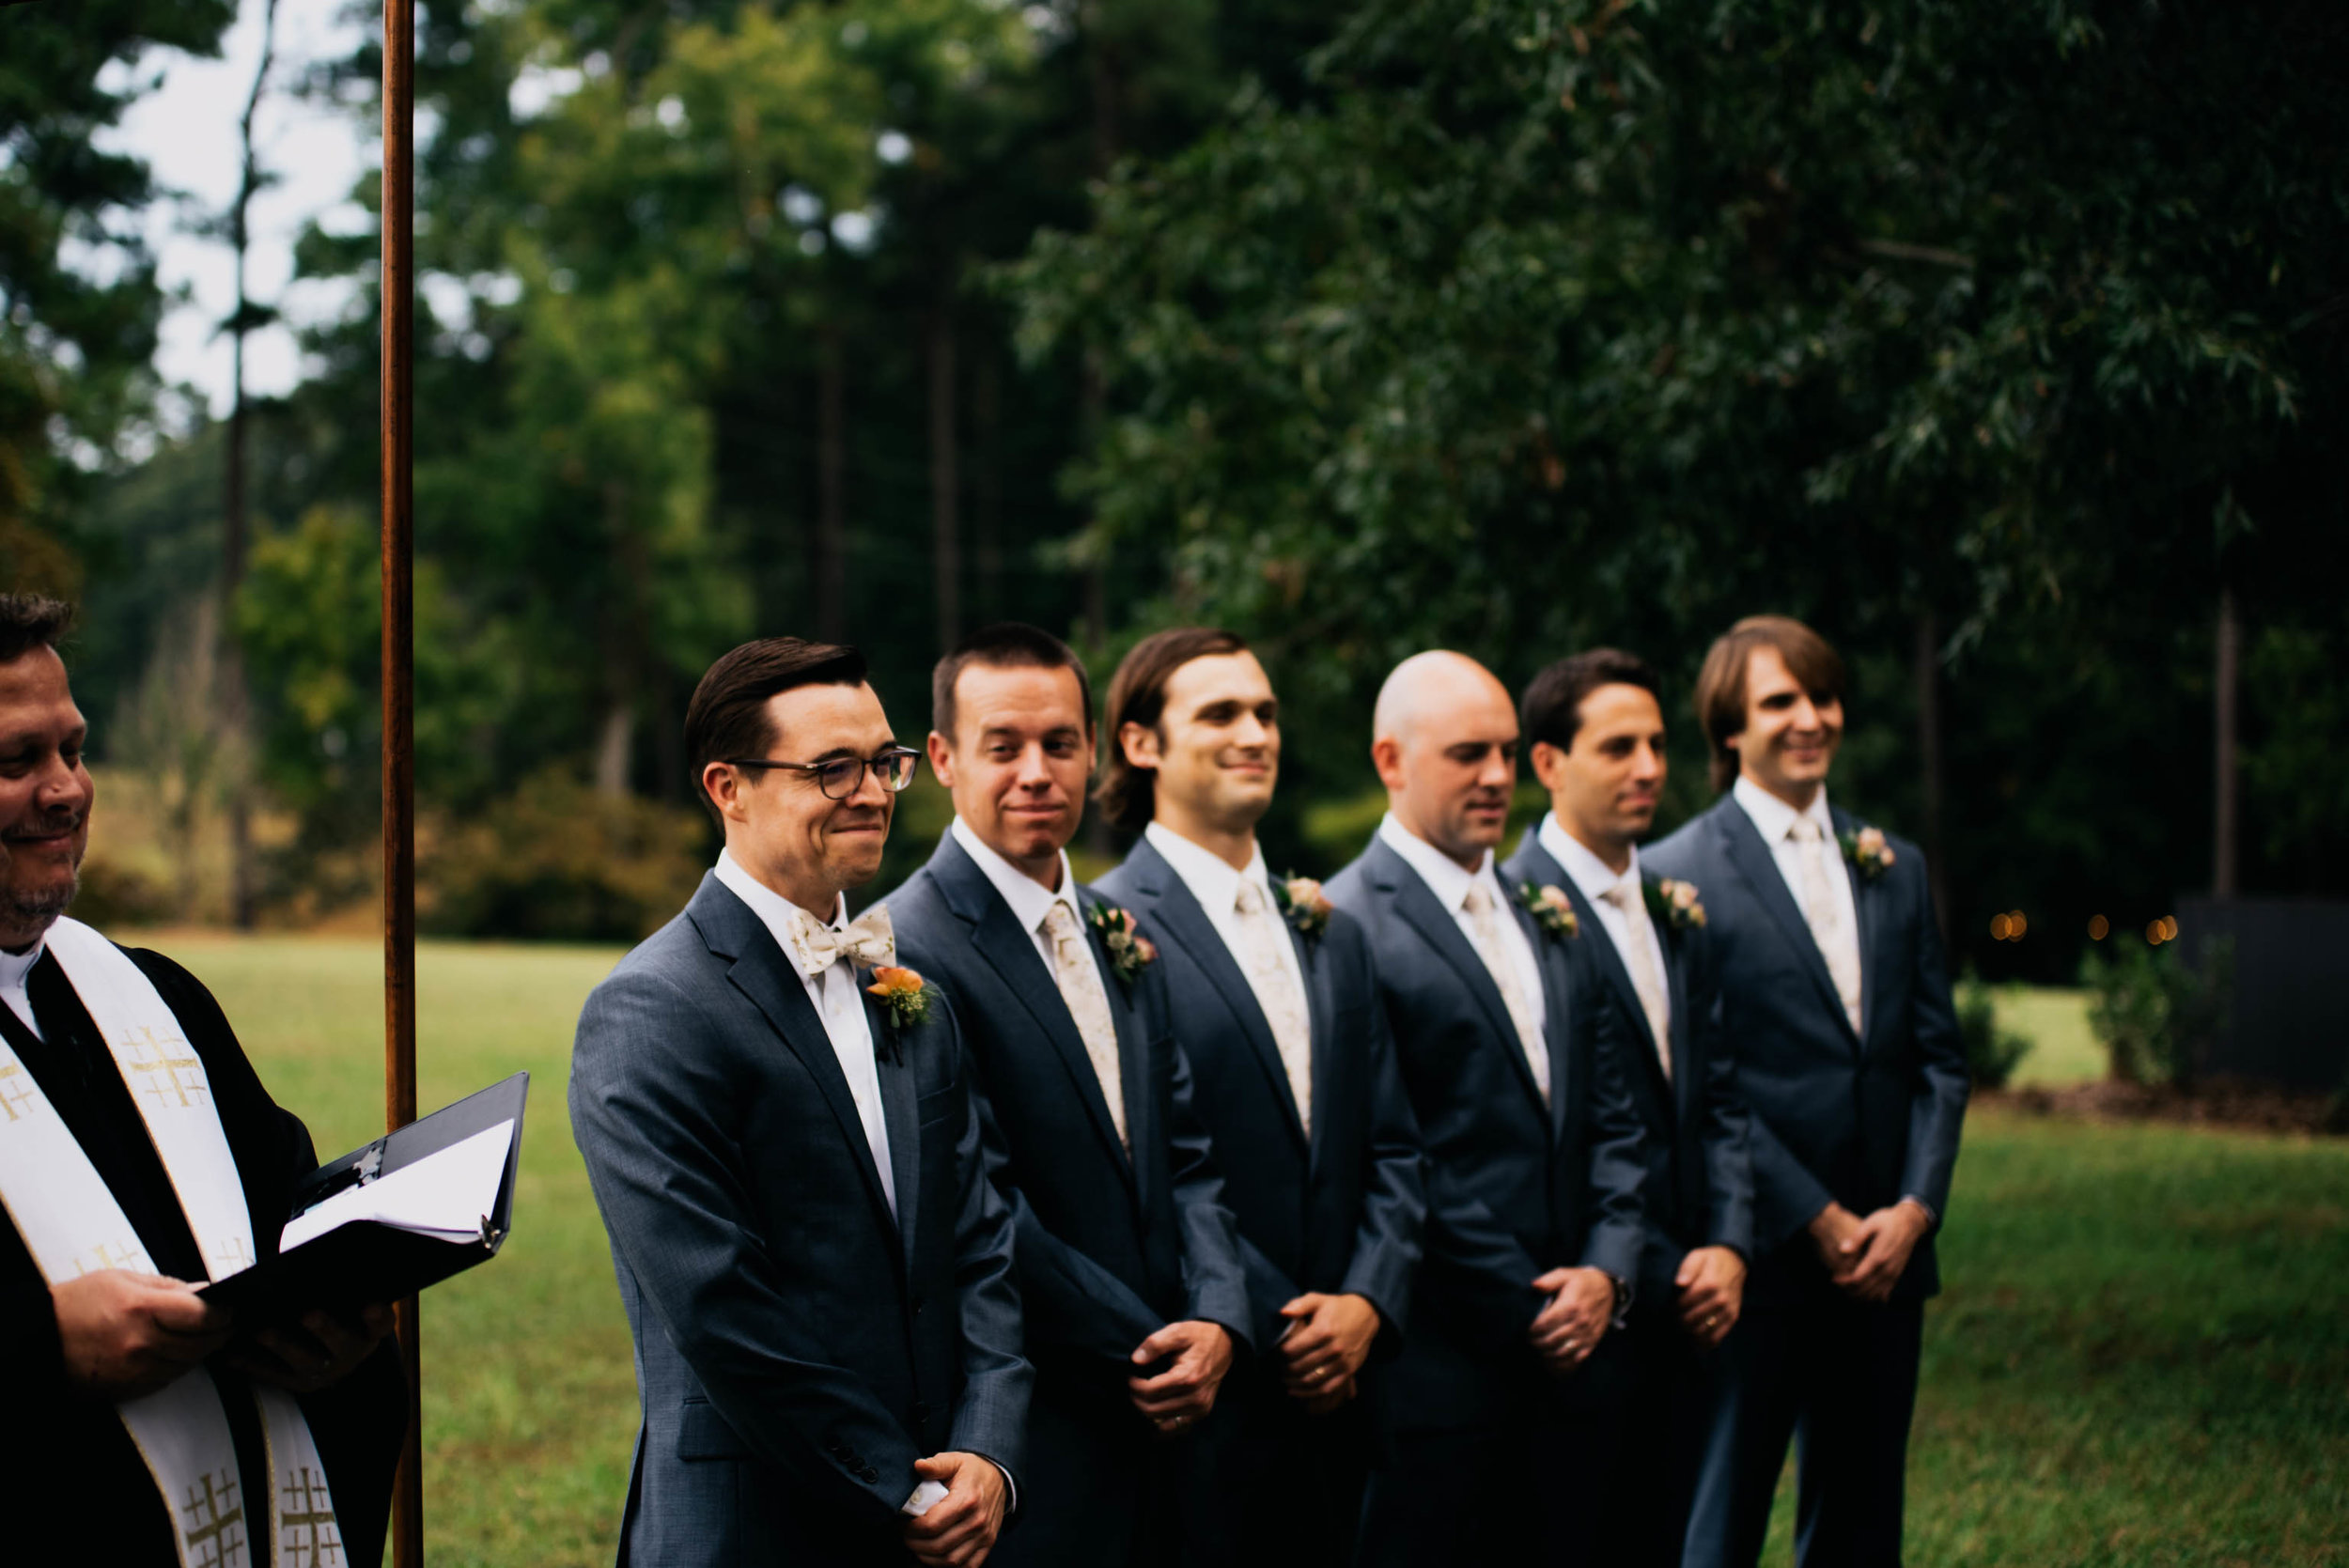 groom and his groomsmen watching the bride walk down the aisle